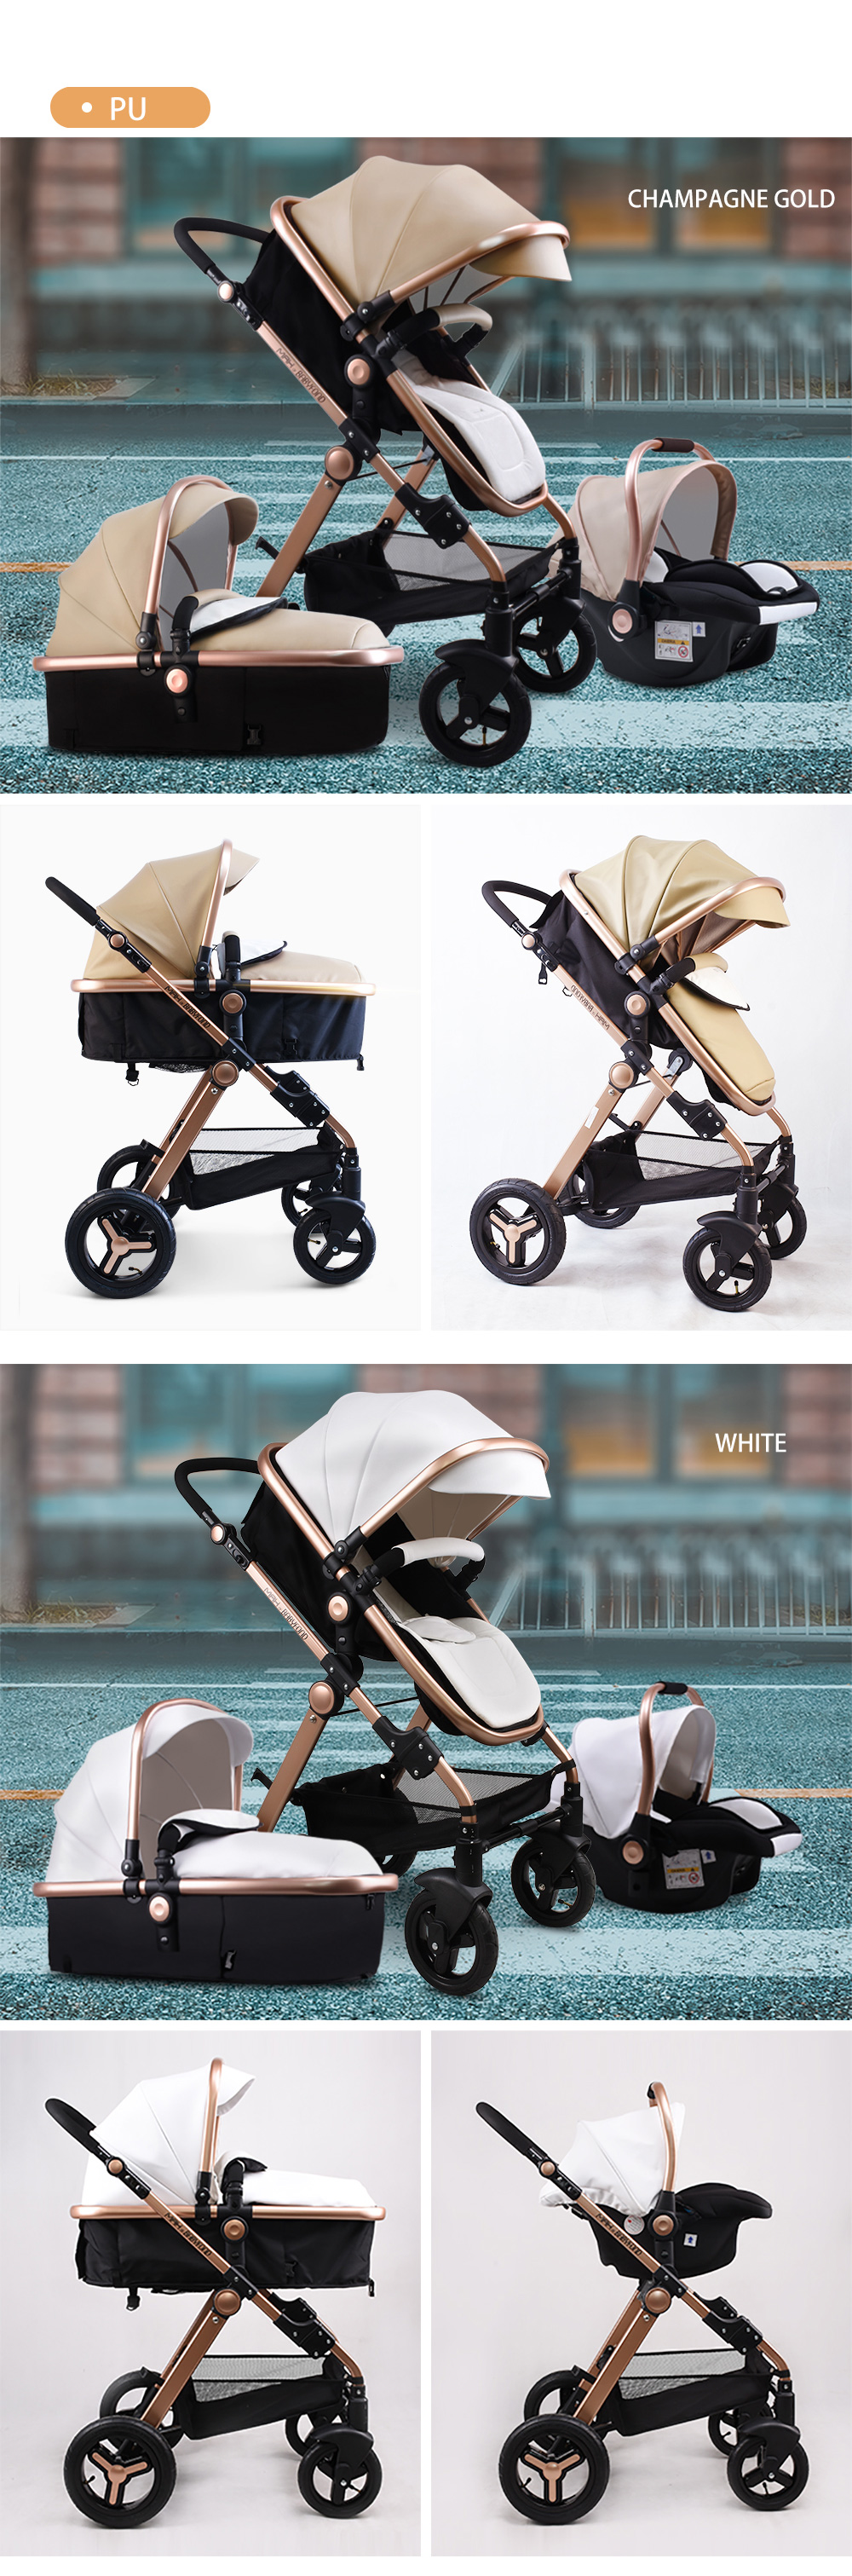 Babyfond High Landscape Baby Stroller 3 in 1 Carriage Pu Leather Aluminum Alloy Frame Pram EU Stand Baby Stroller with Comform